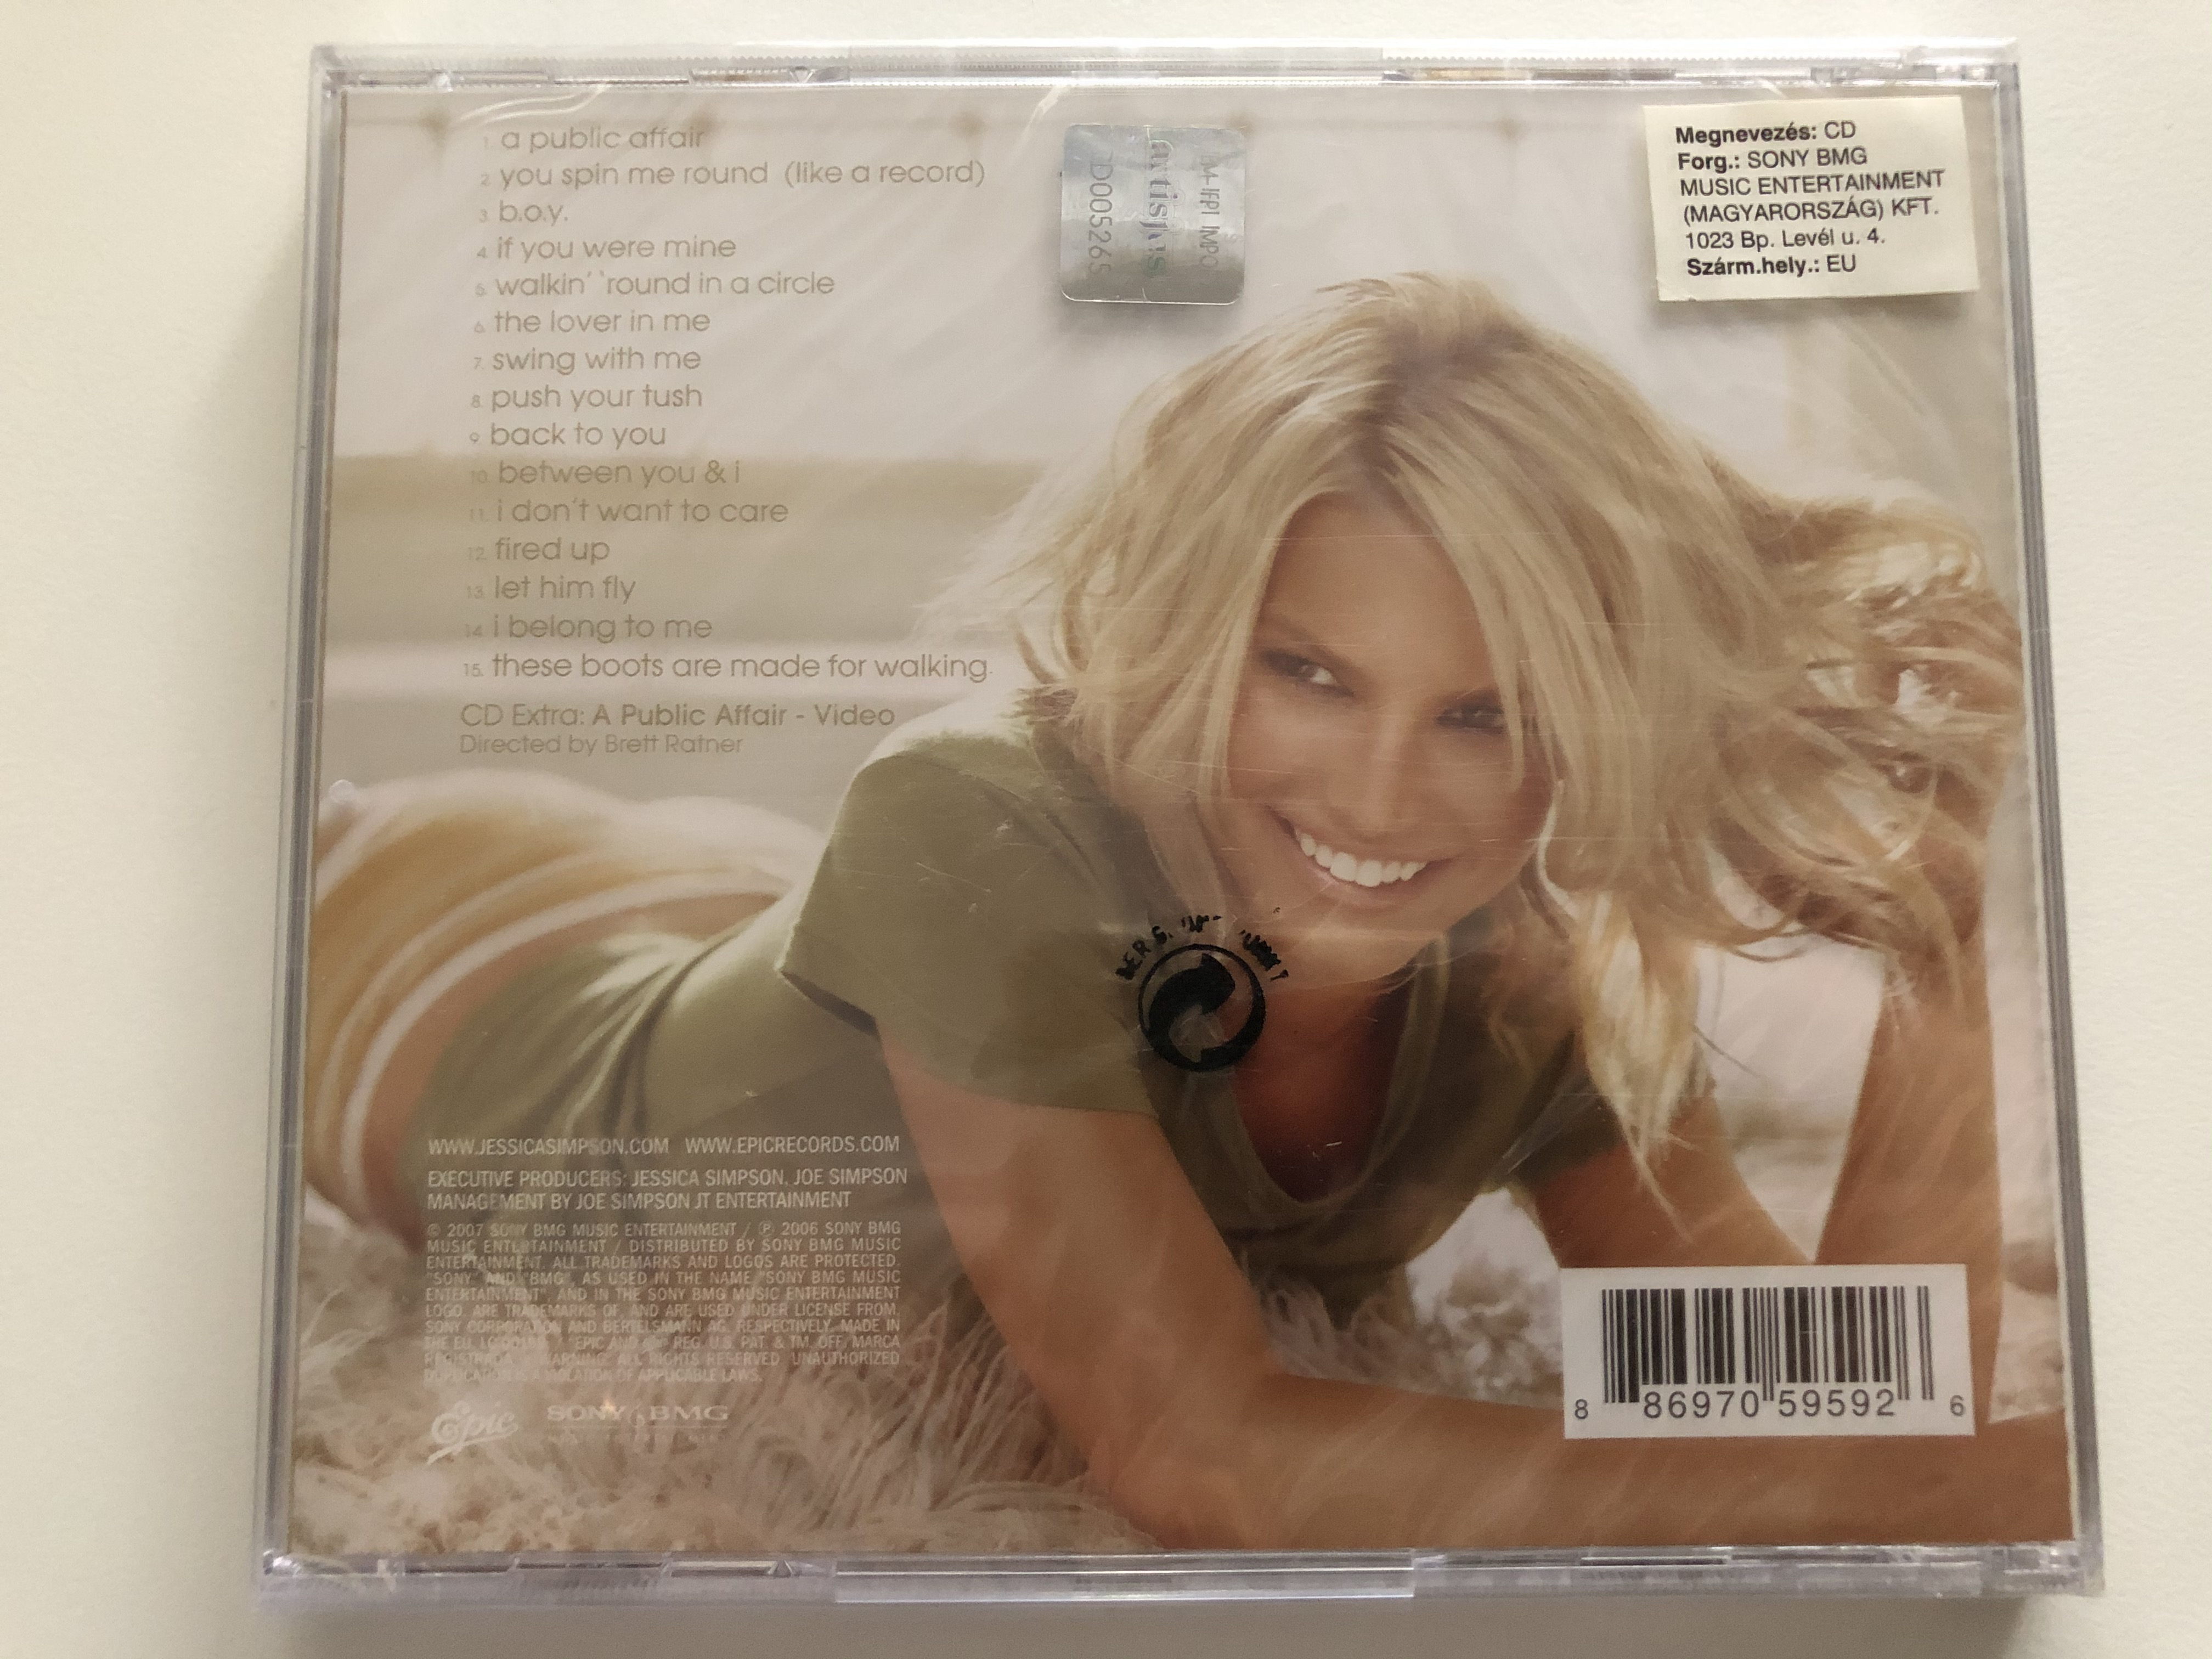 jessica-simpson-a-public-affair-the-new-album-featuring-these-boots-are-made-for-walking-the-hit-single-and-video-for-a-public-affair-sony-bmg-music-entertainment-audio-cd-200.jpg